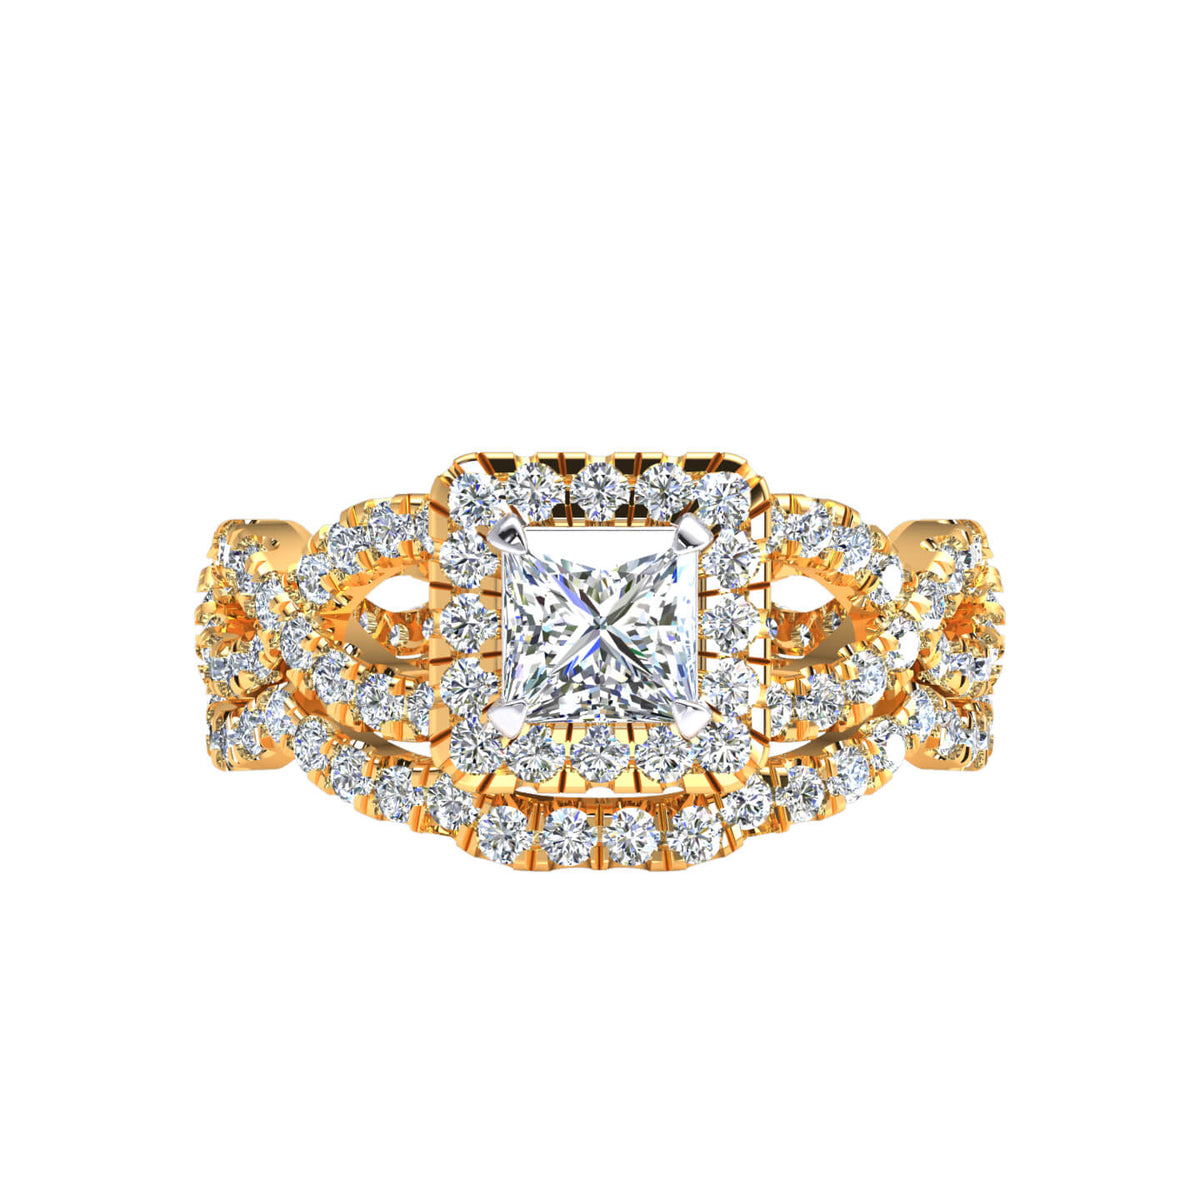 1.66 Ct Princess FG VS Diamond Halo Solitaire Engagement Set For Women 14k Gold